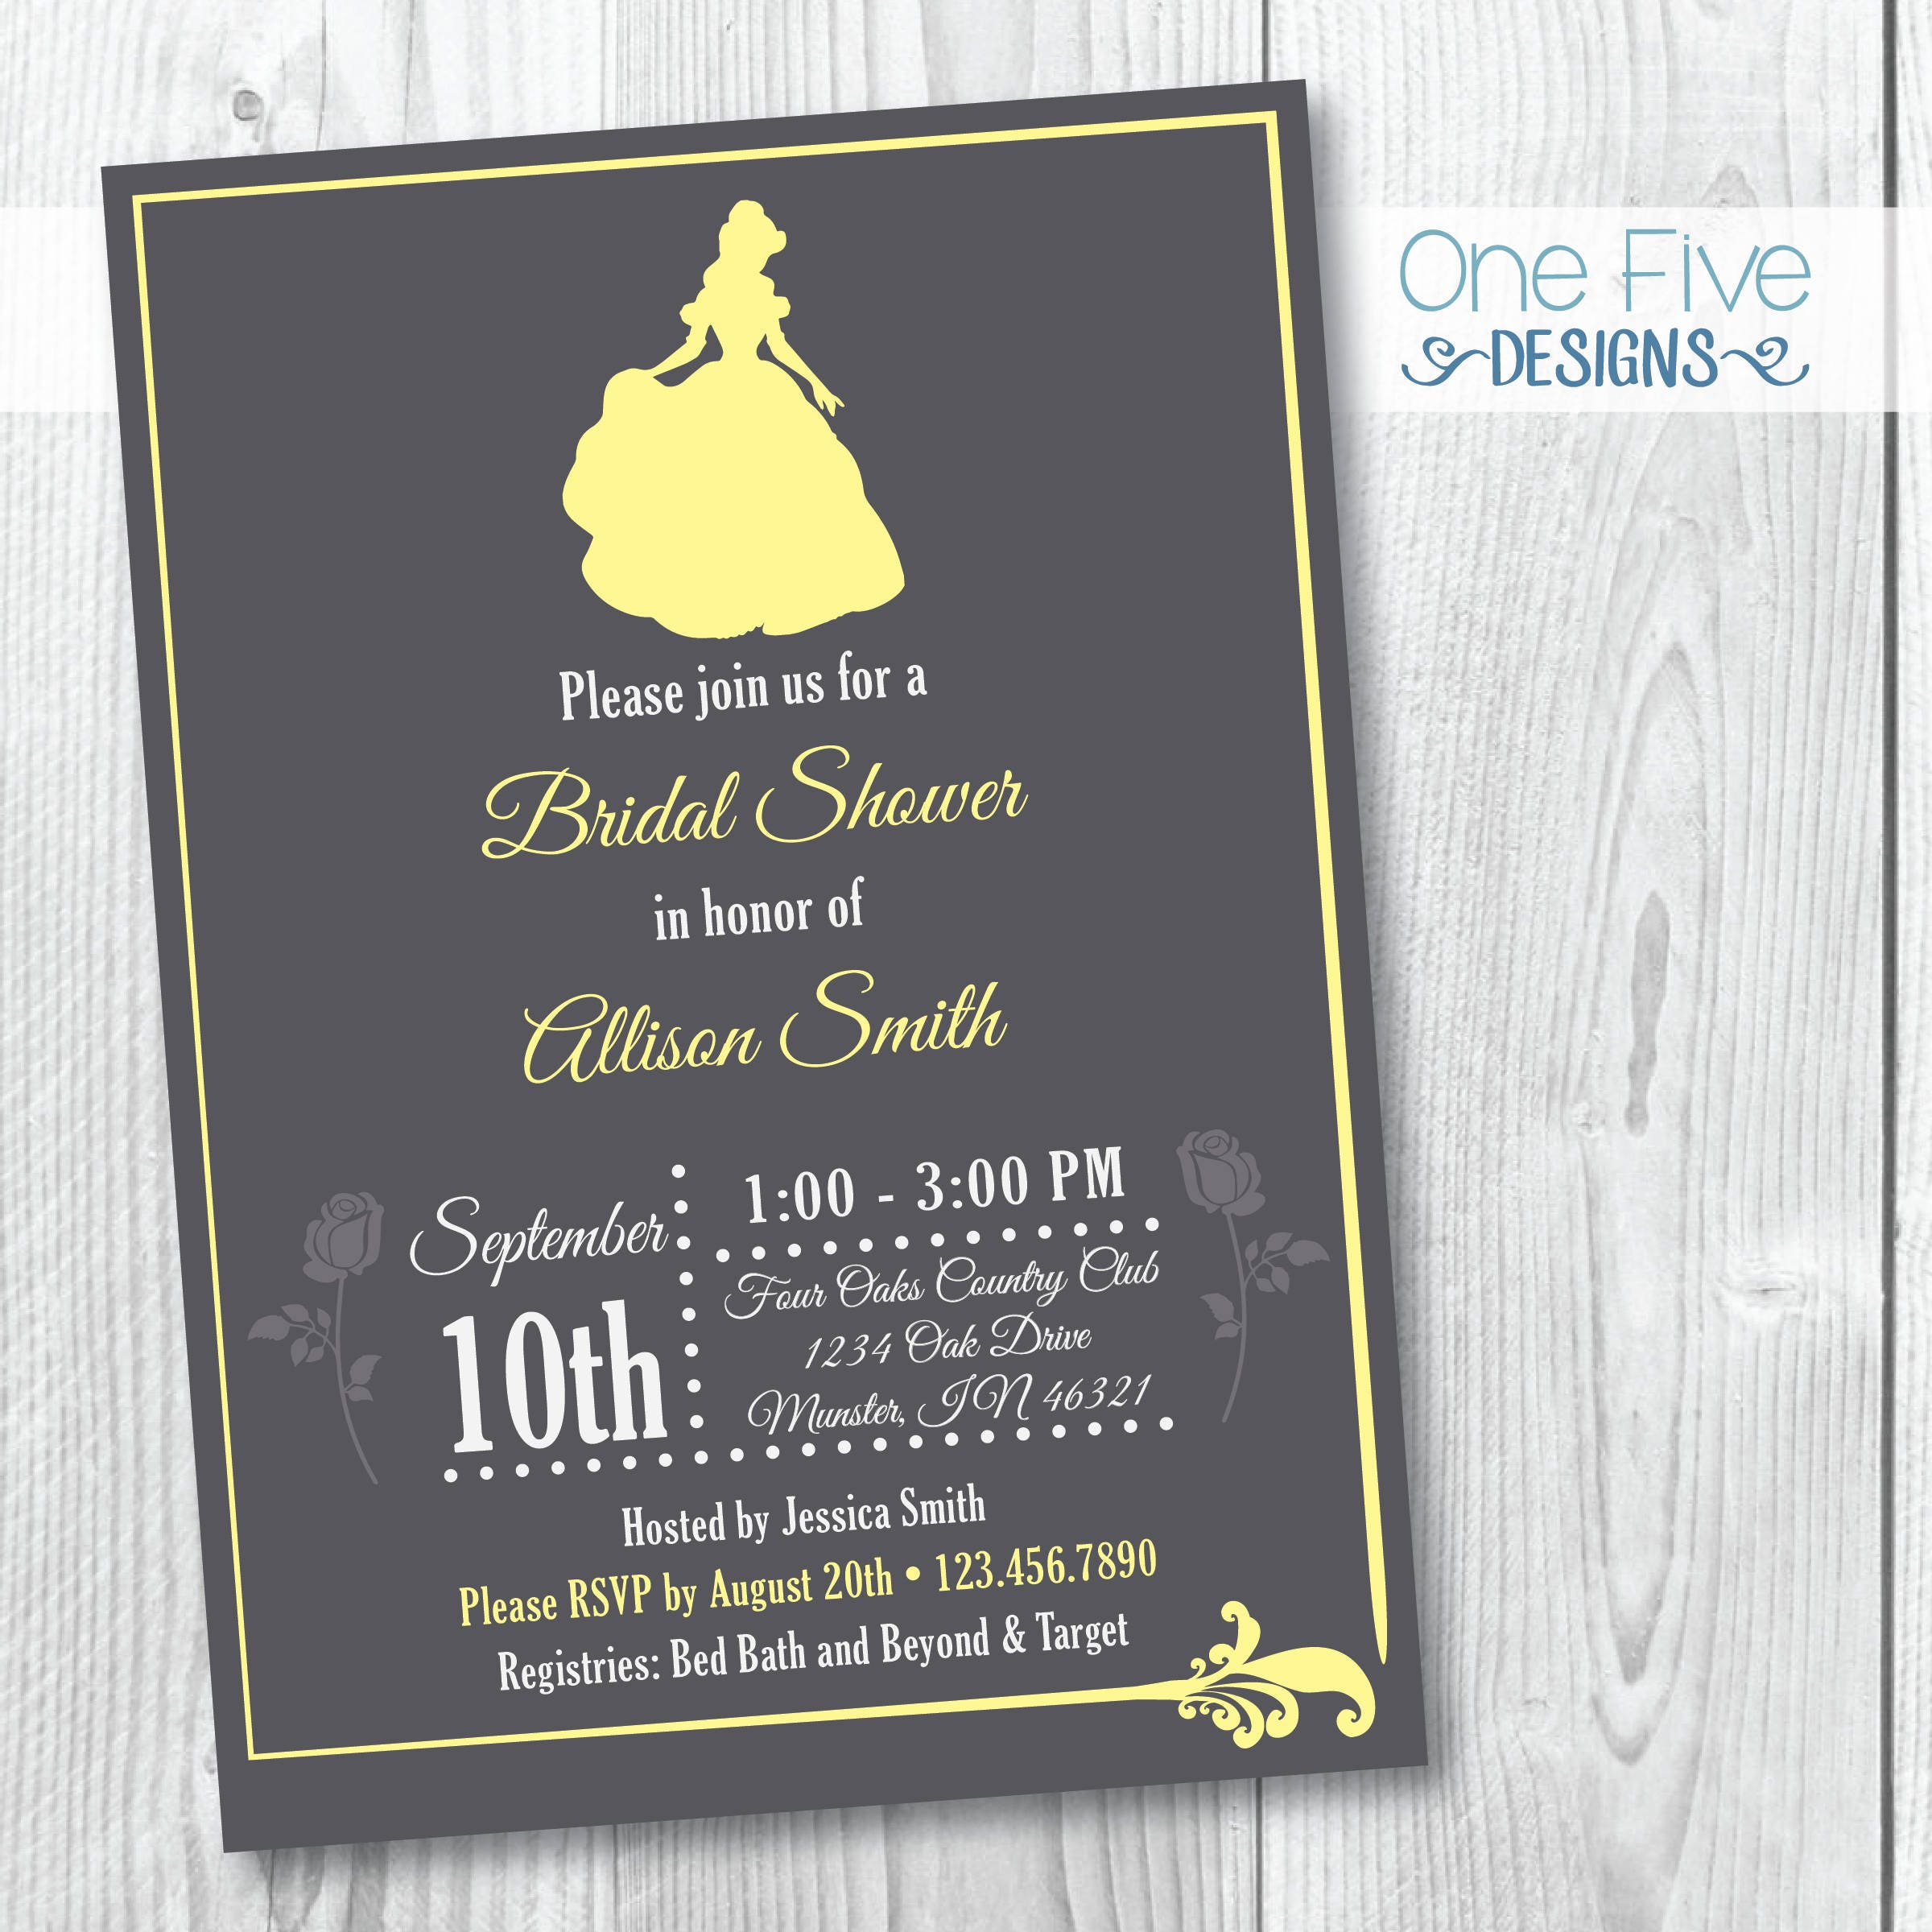 Princess Theme Bridal Shower Invitation Beauty And The Beast Etsy